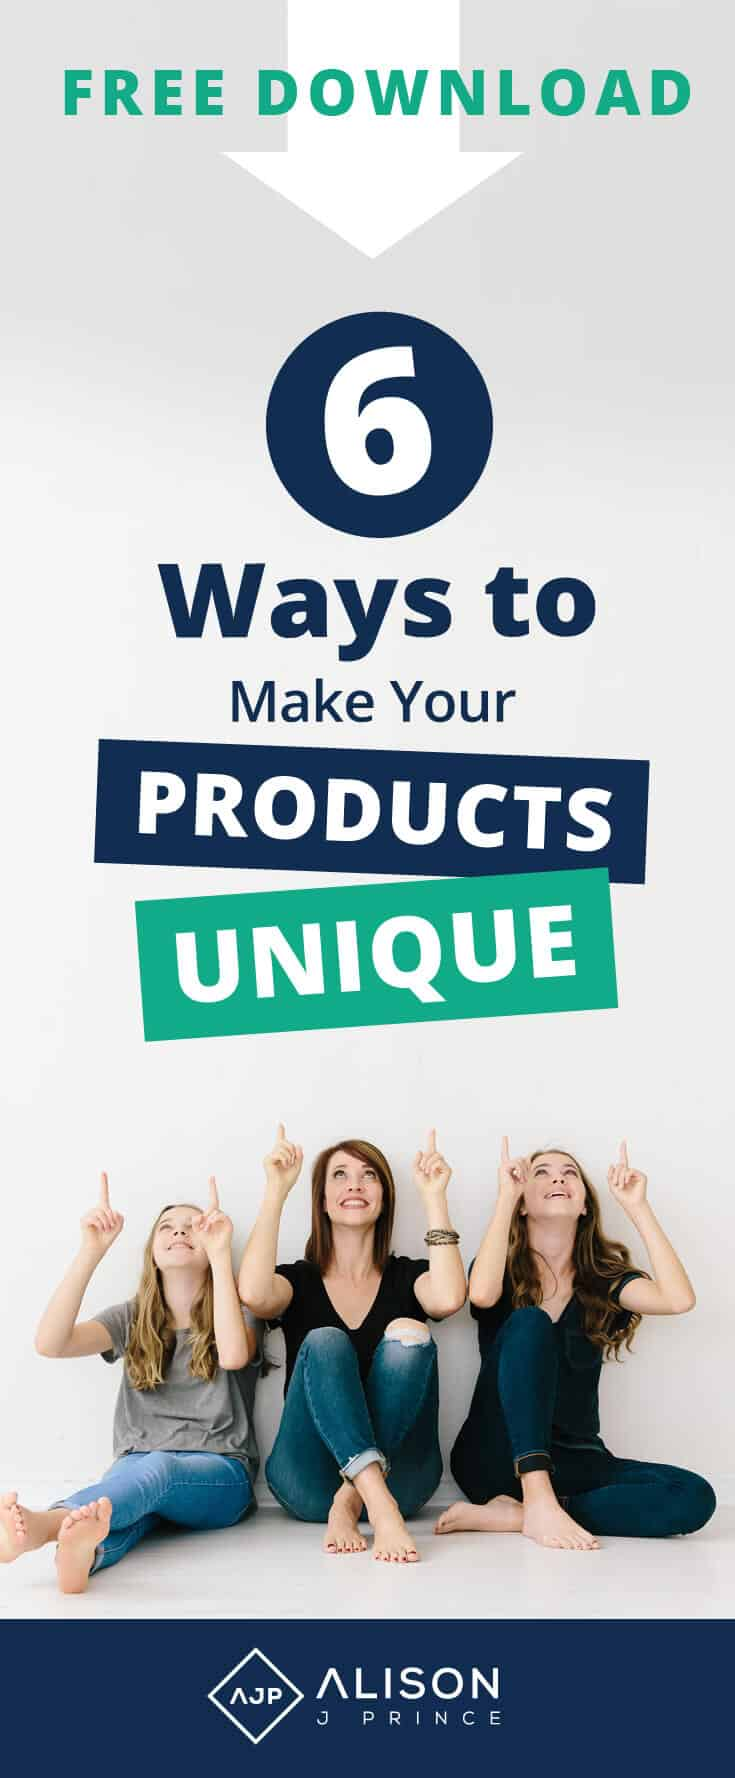 Make your product unique - ecommerce tips from Alison J. Prince